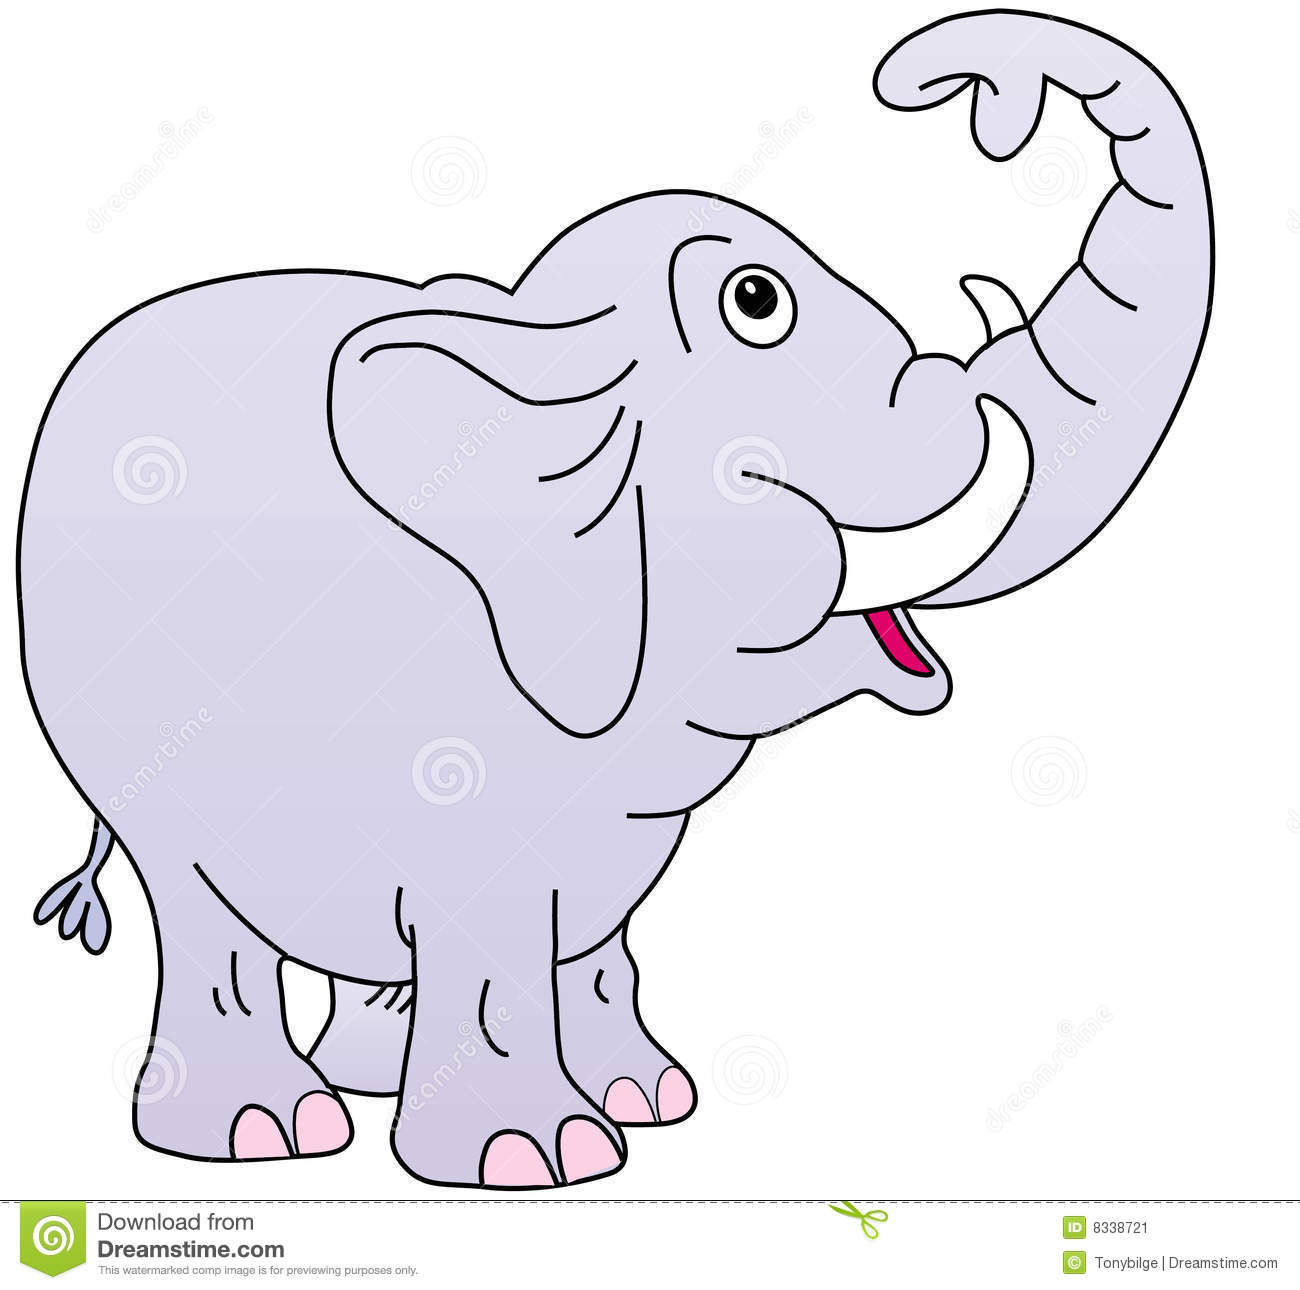 Elephant trunk up clipart.